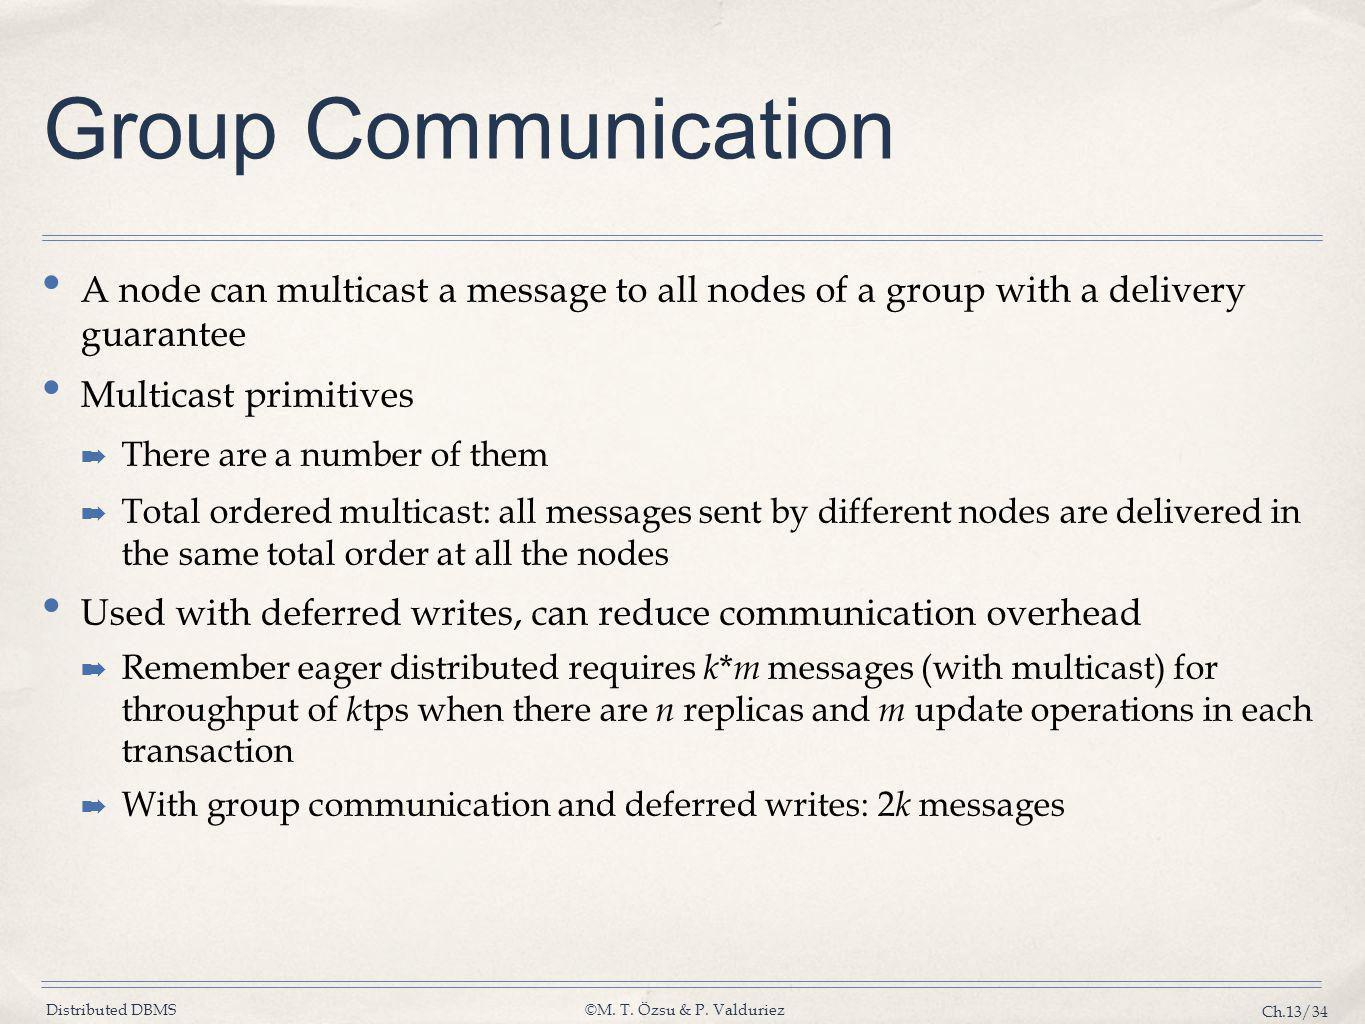 Distributed DBMS©M. T. Özsu & P. Valduriez Ch.13/34 Group Communication A node can multicast a message to all nodes of a group with a delivery guarant